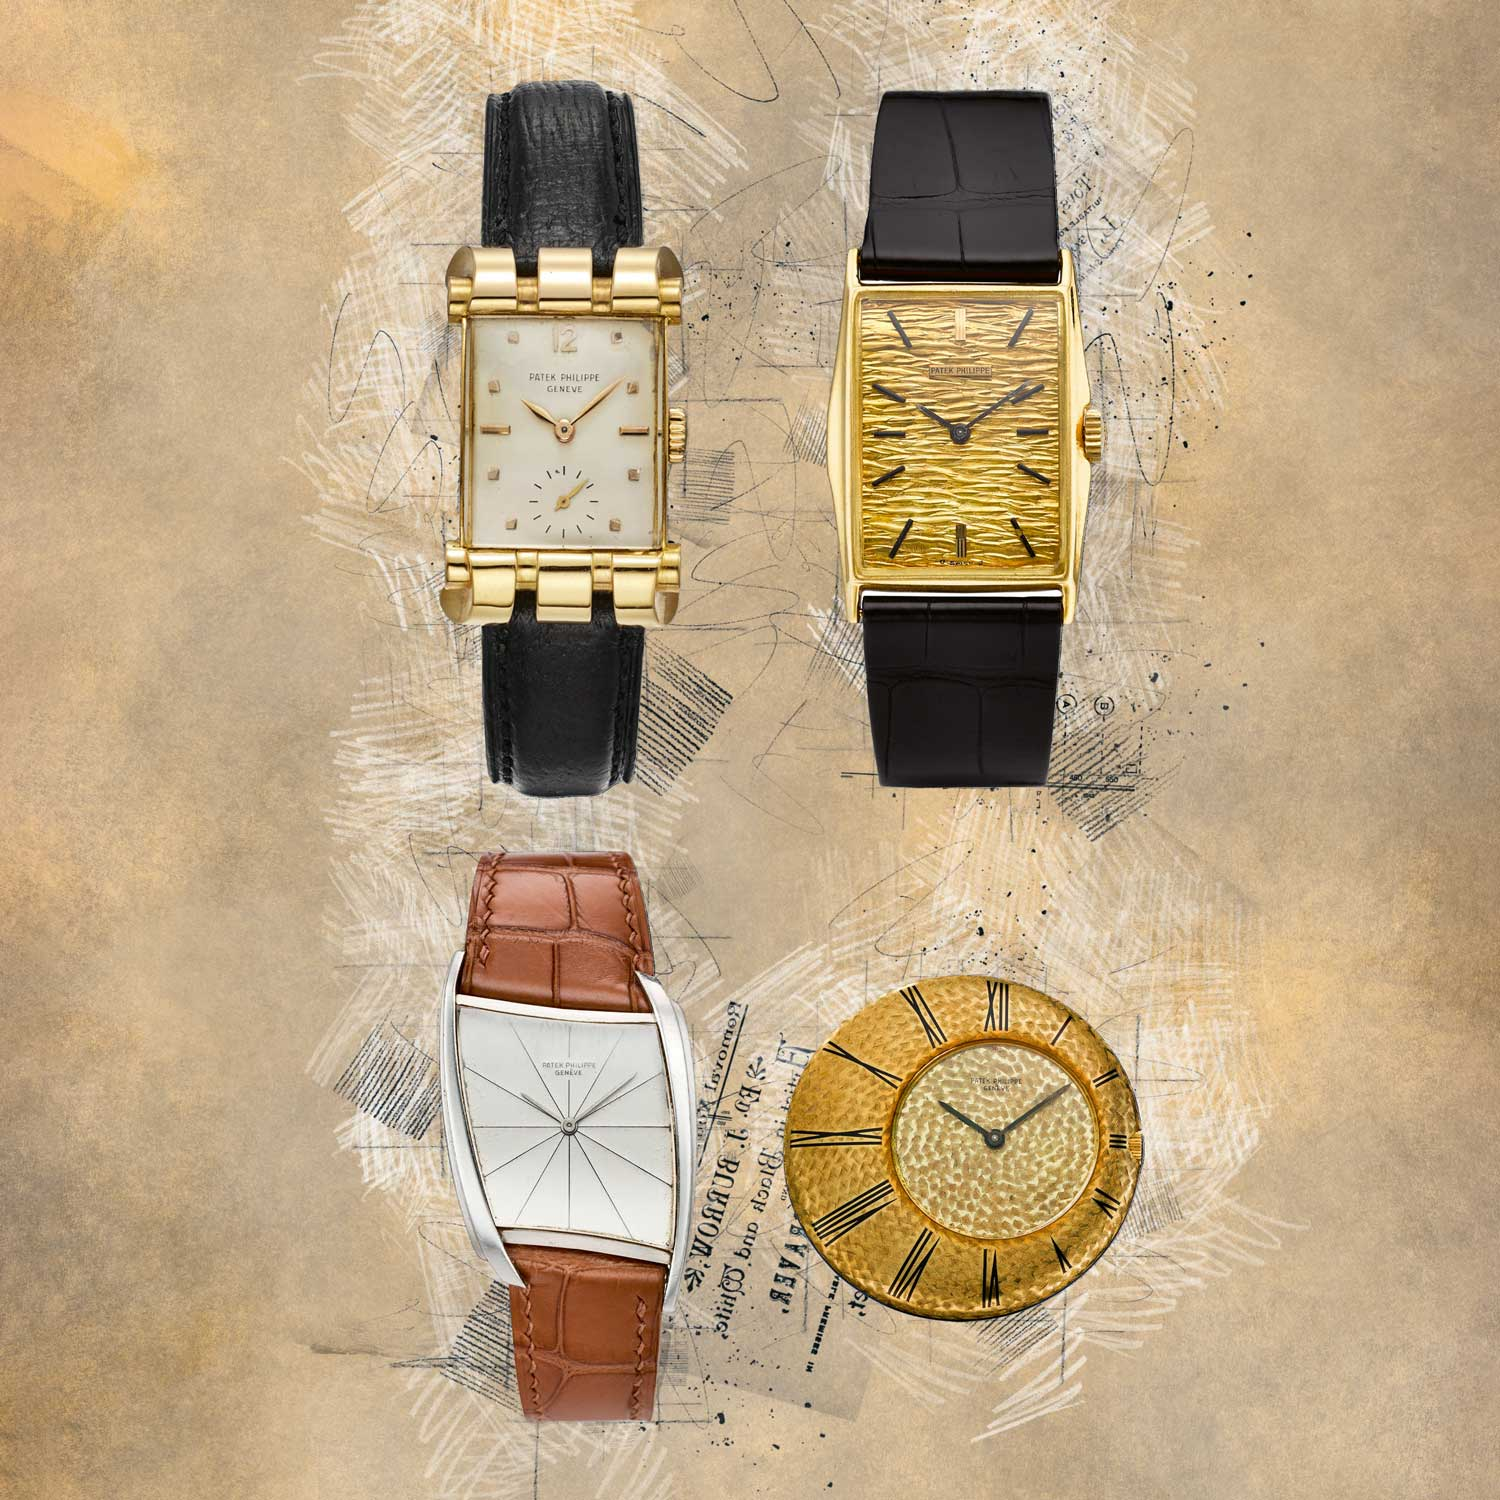 """Patek Philippe ref. 2471, with its """"ram's horns"""" or """"bear claw"""" case made by Markowski; Patek Philippe 18K yellow gold ref. 2554/7J """"Manta Ray,"""" made in 1964; Gilbert Albert's asymmetrical masterpiece, the Patek Philippe ref. 3424P from 1961; Patek Philippe's """"Ricochet"""" pocket watch designed by Gilbert Albert in 1967 (Images: Collectability)"""